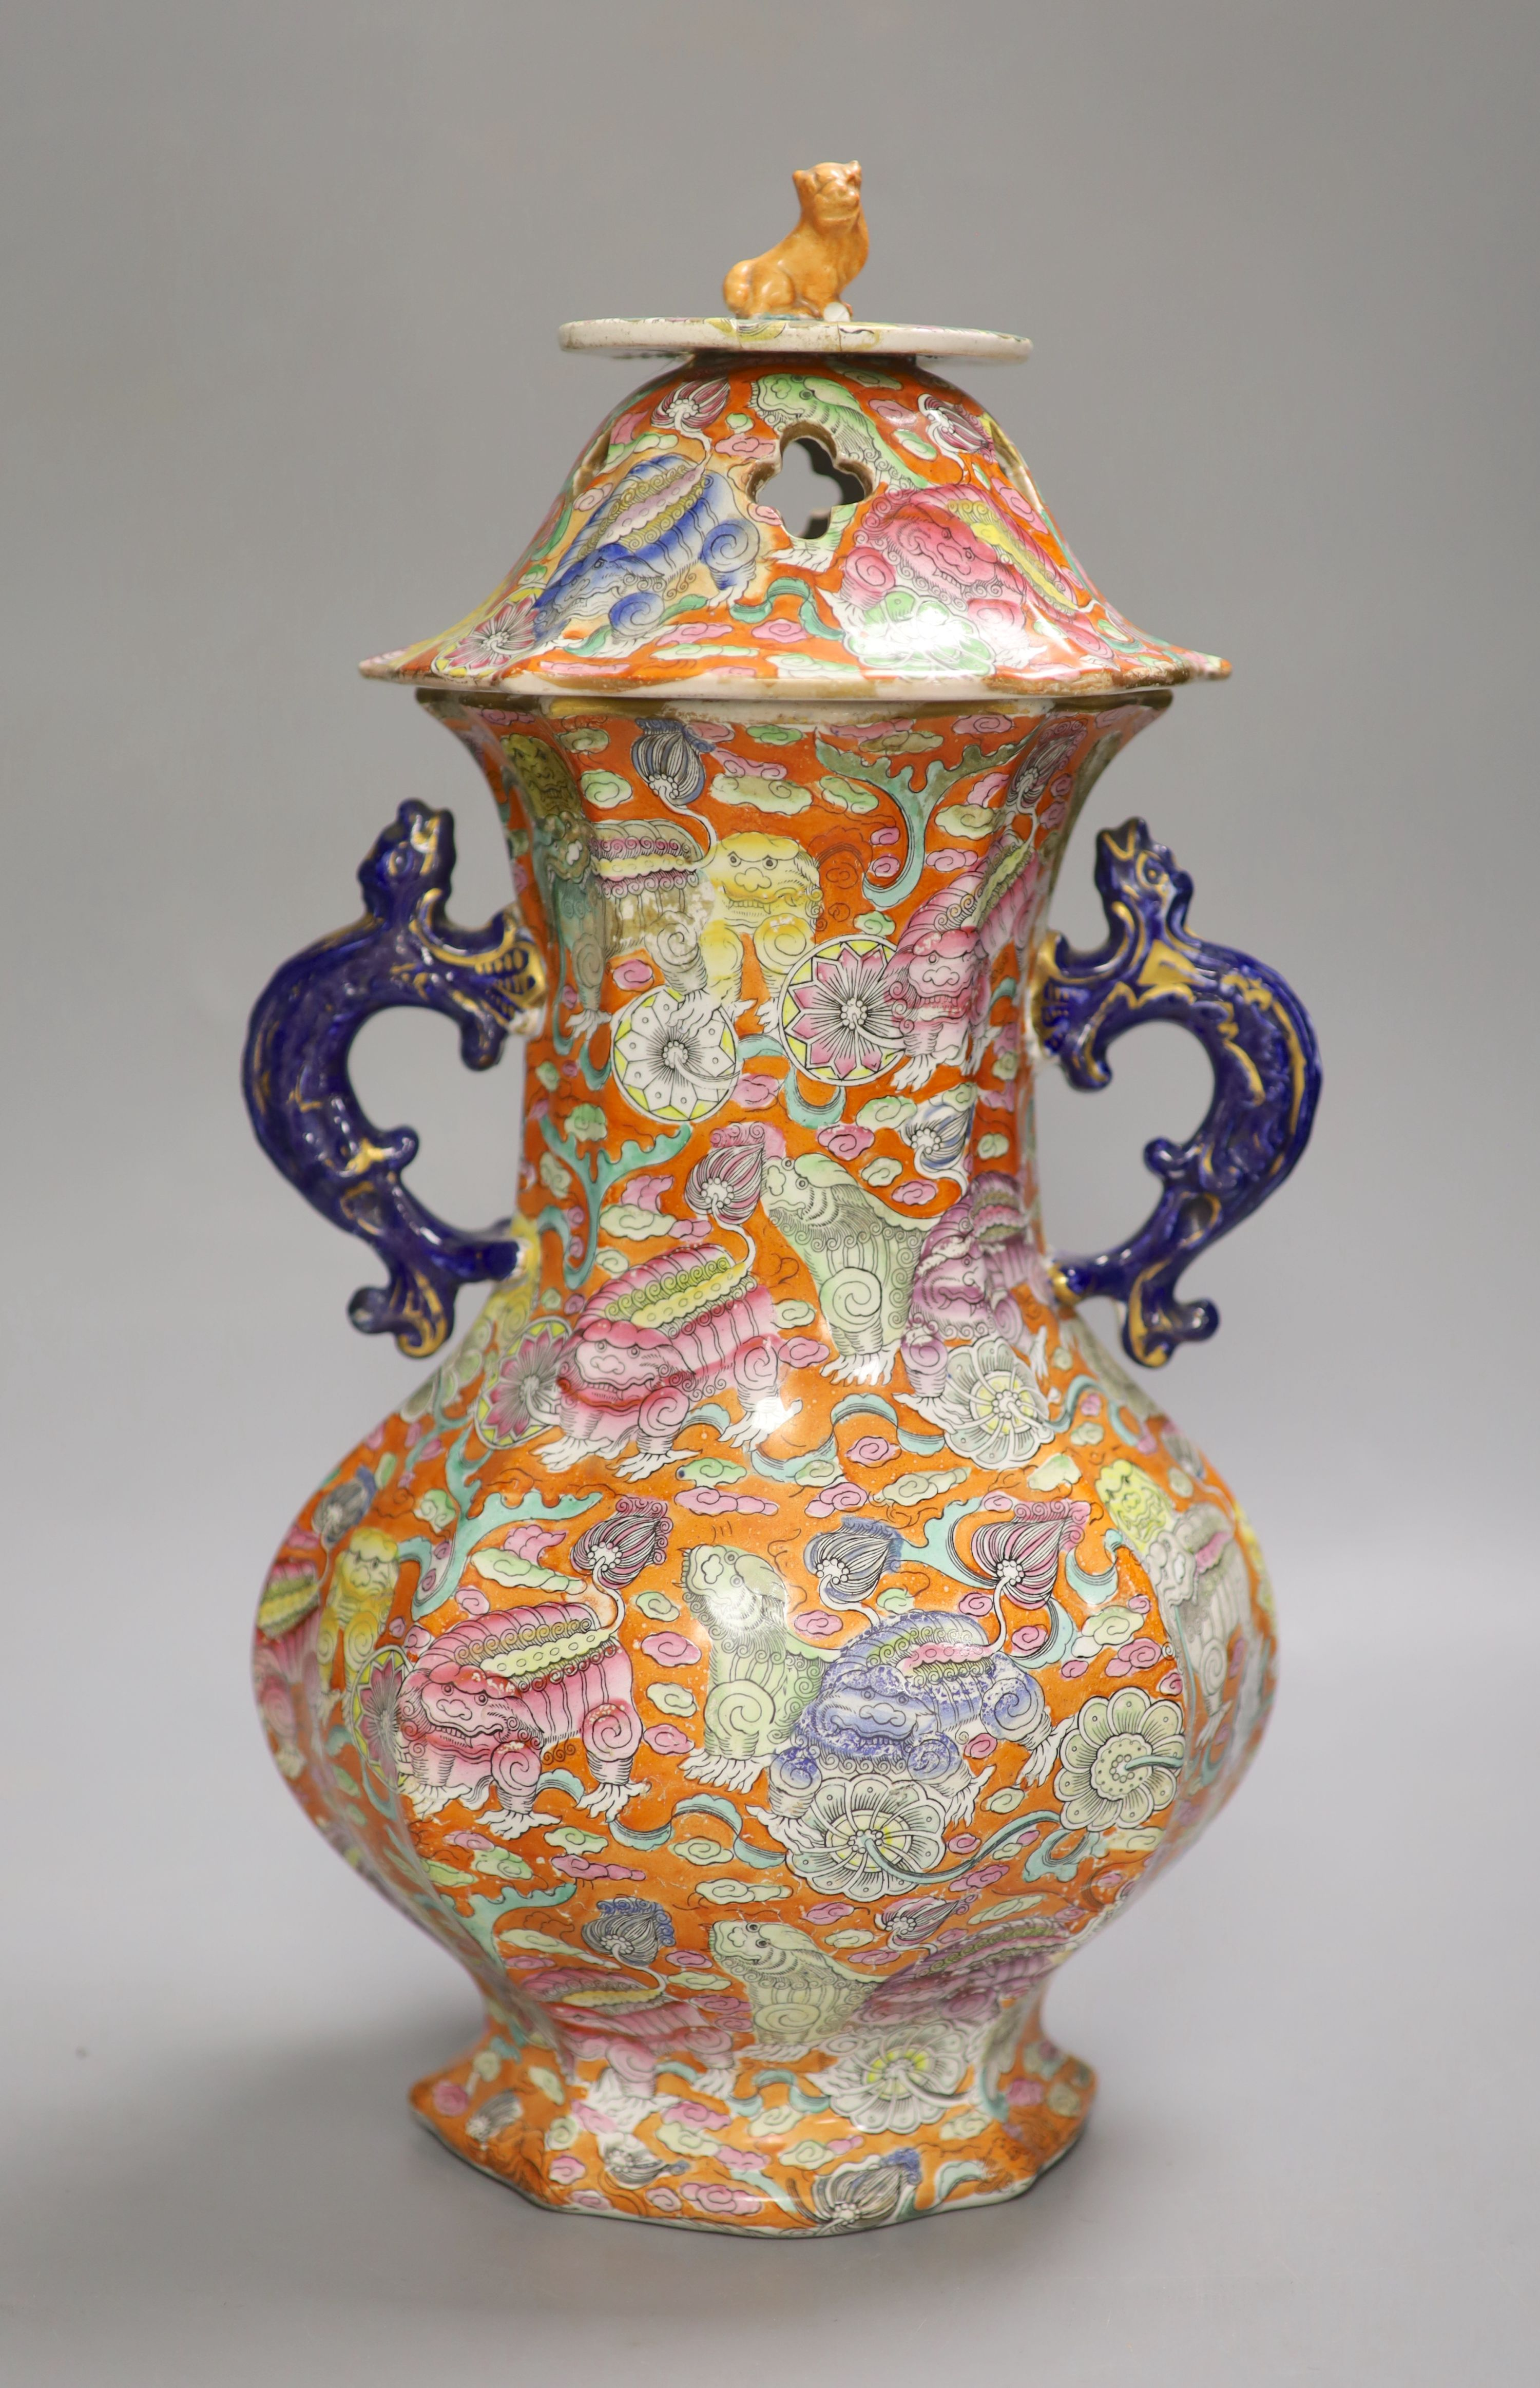 A 19th century chinoiserie ironstone vase and cover, height 41cm (a.f.)CONDITION: Cover modified,